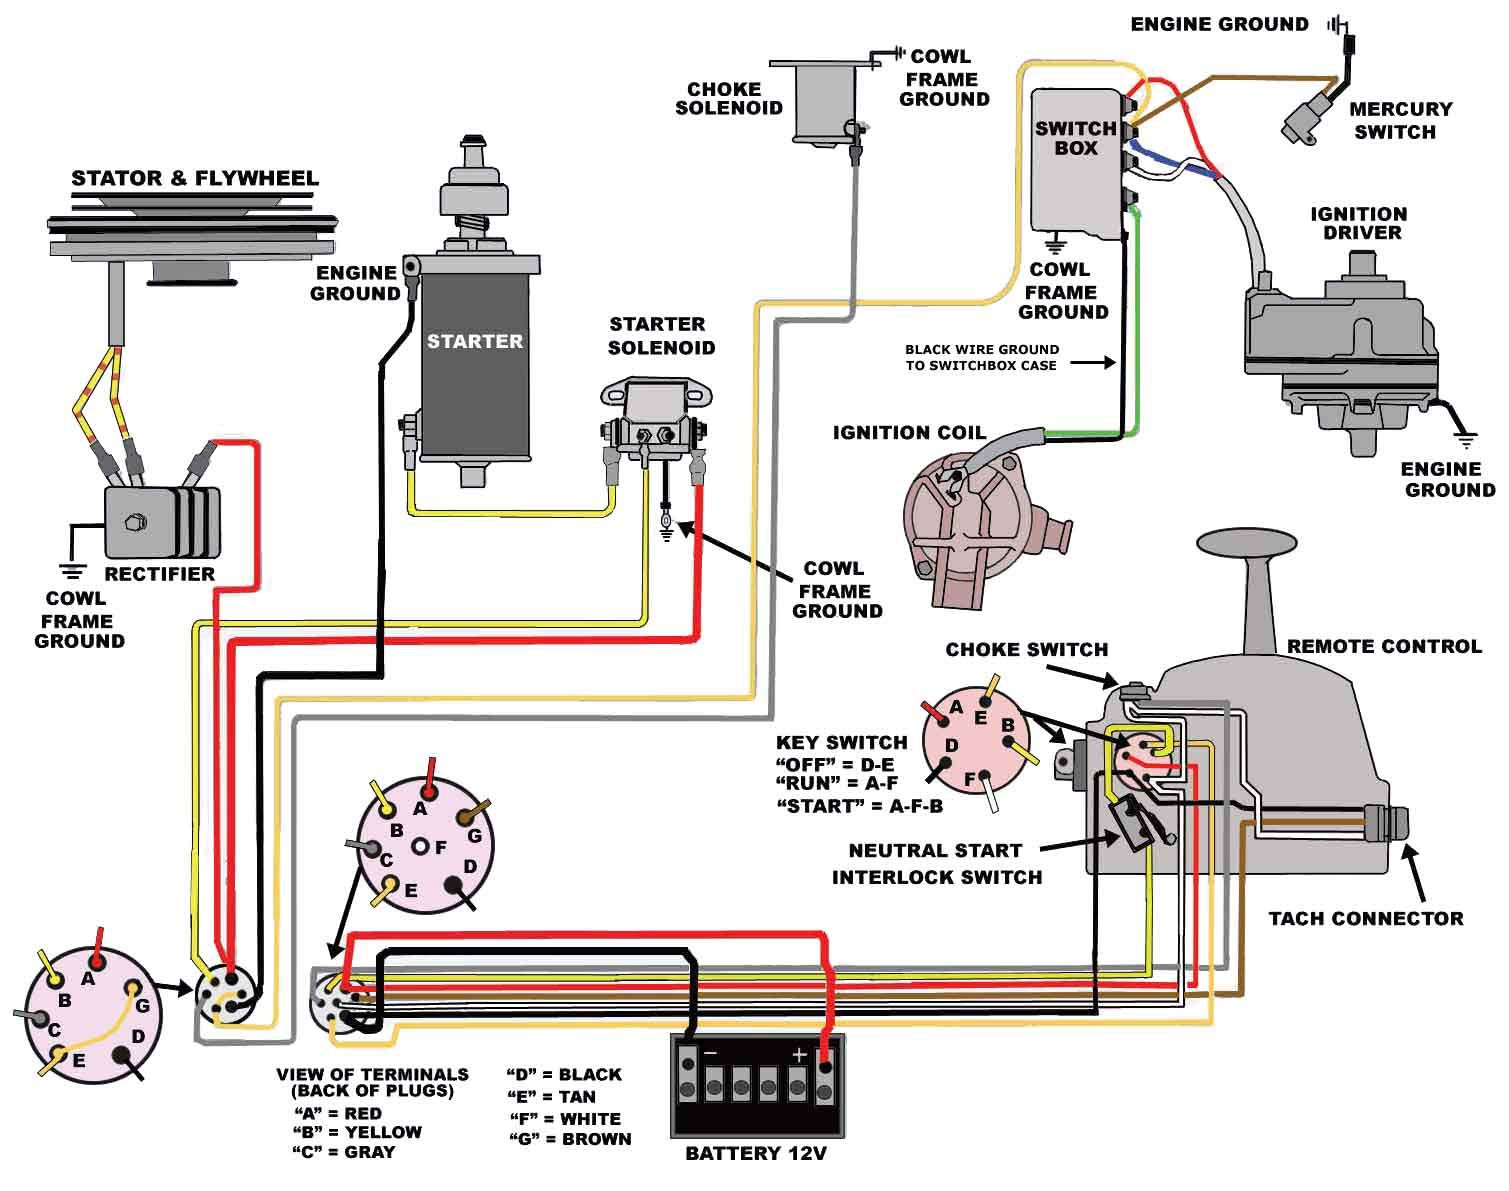 13cfb2d962bcd0c03103625817b7d51d mercury outboard wiring diagram diagram pinterest mercury  at reclaimingppi.co